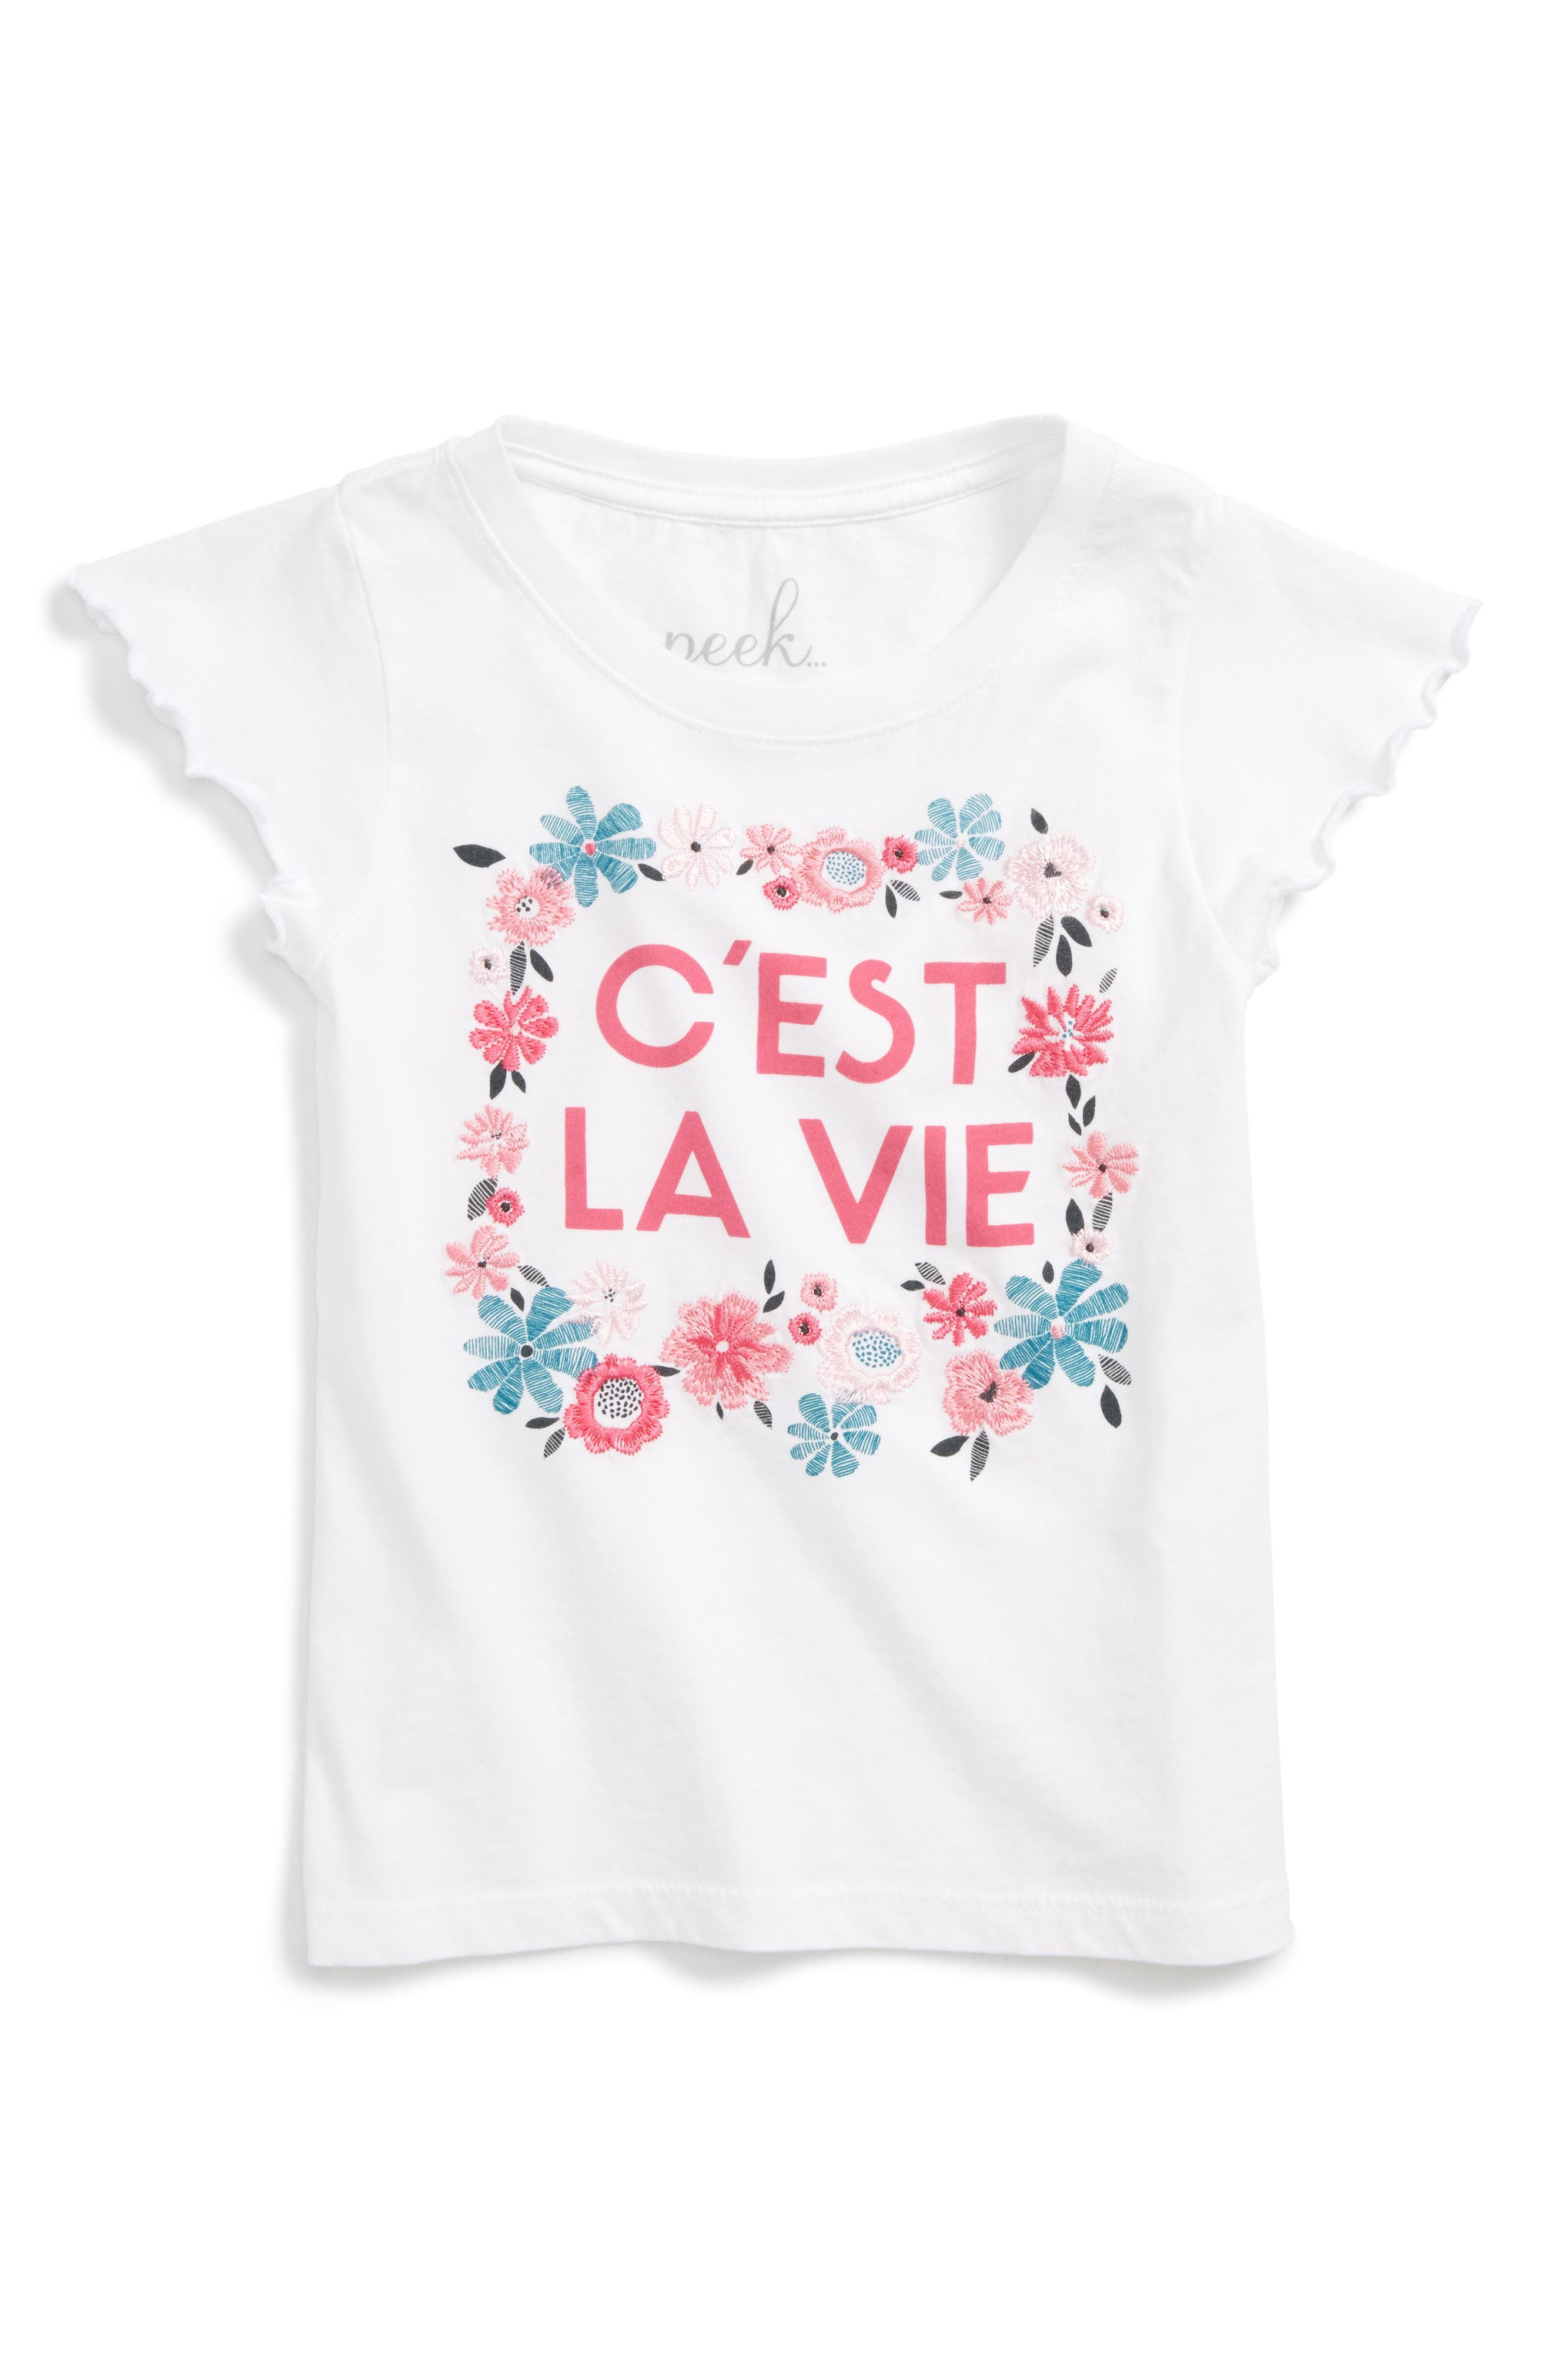 Peek C'est La Vie Tee (Toddler Girls, Little Girls & Big Girls)